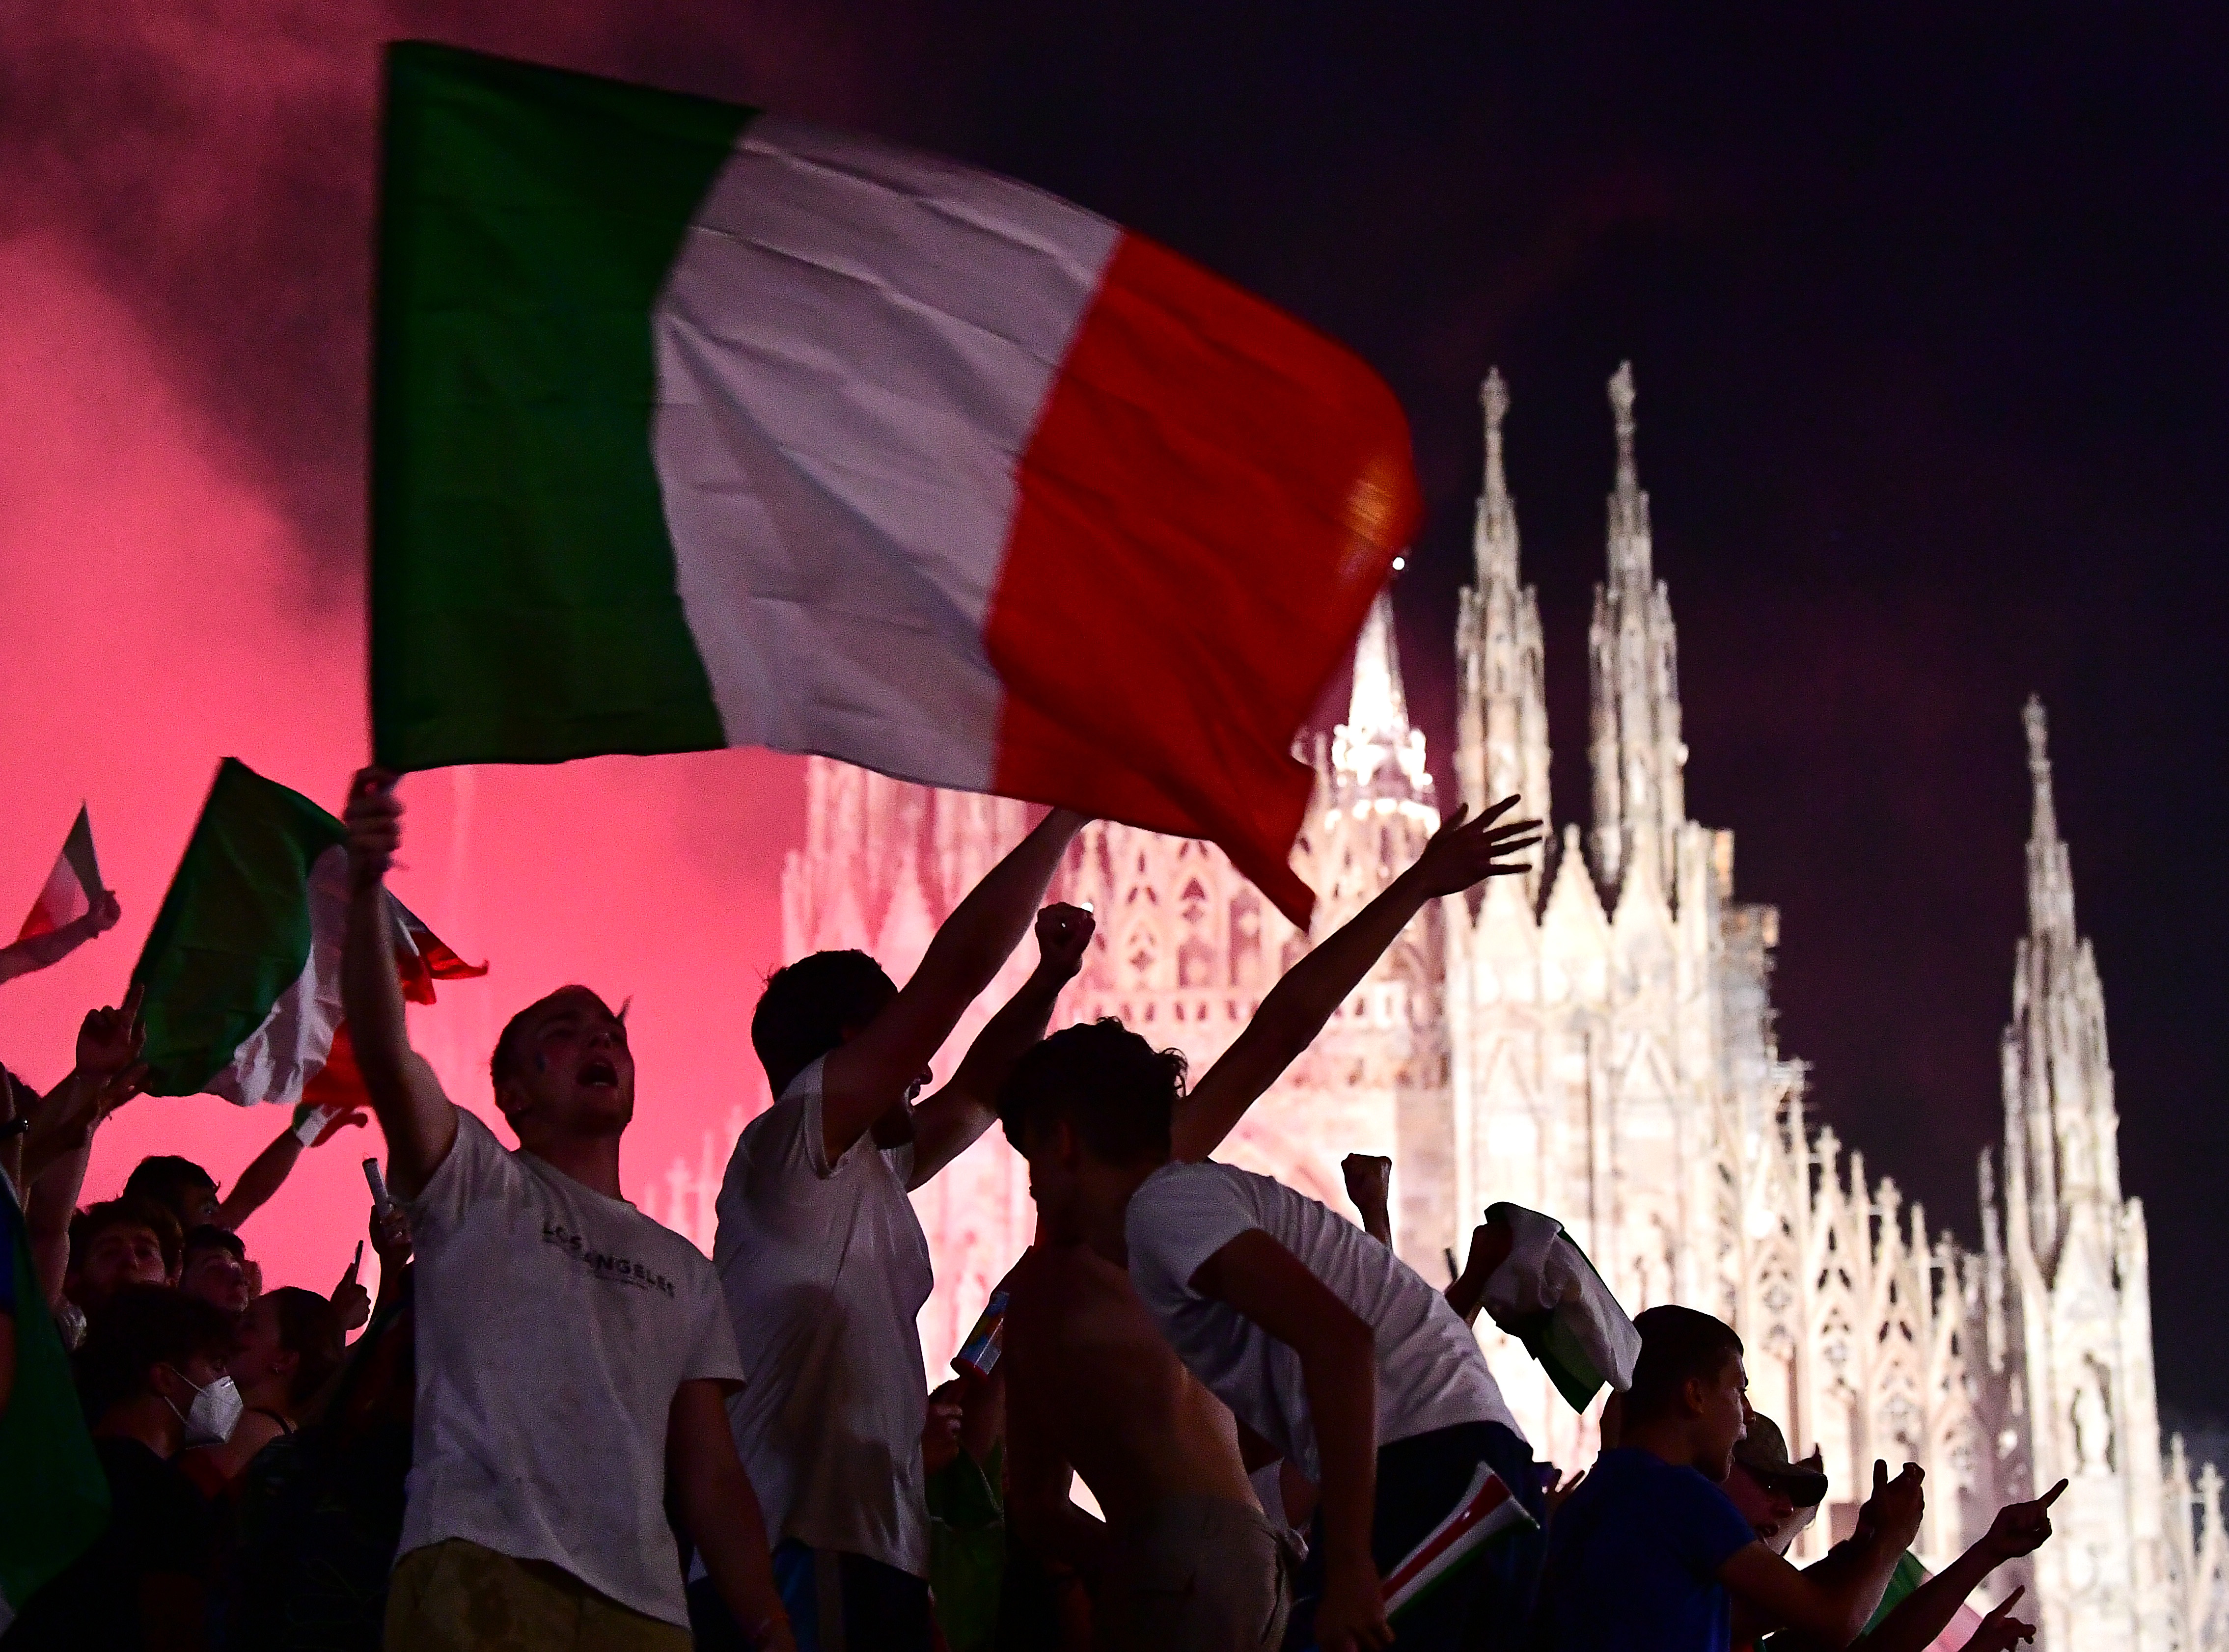 Soccer Football - Euro 2020 - Final - Fans gather for Italy v England - Milan, Italy - July 11, 2021  Italy fans celebrate after winning the Euro 2020 at Piazza Duomo REUTERS/Flavio Lo Scalzo